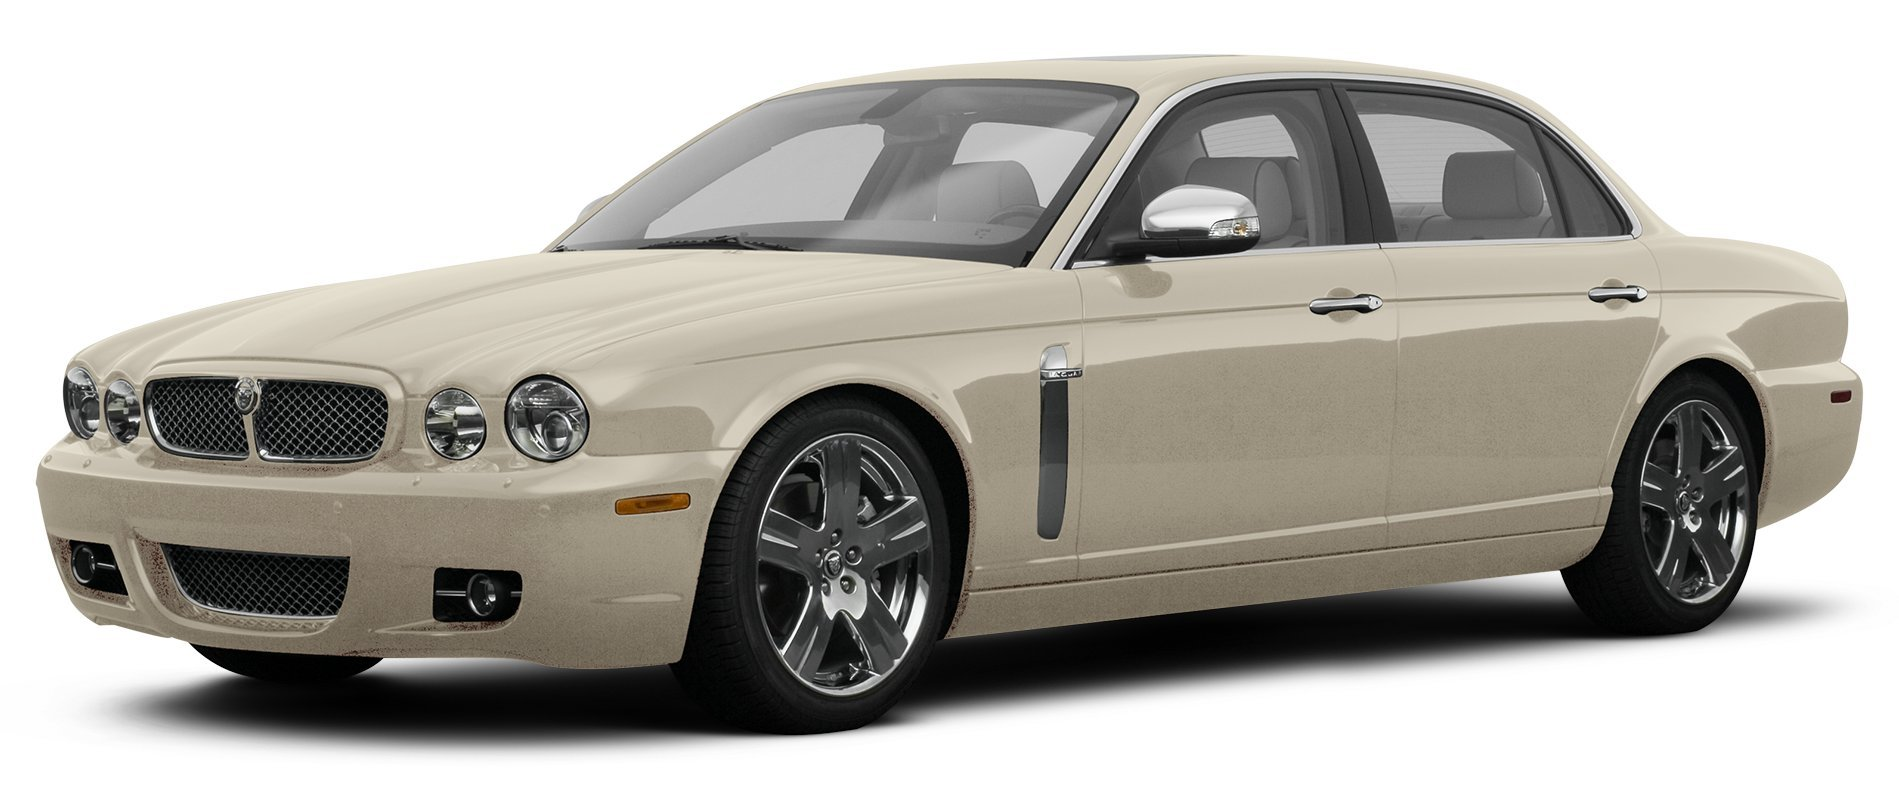 2009 Jaguar Vanden Plas, 4-Door Sedan ...